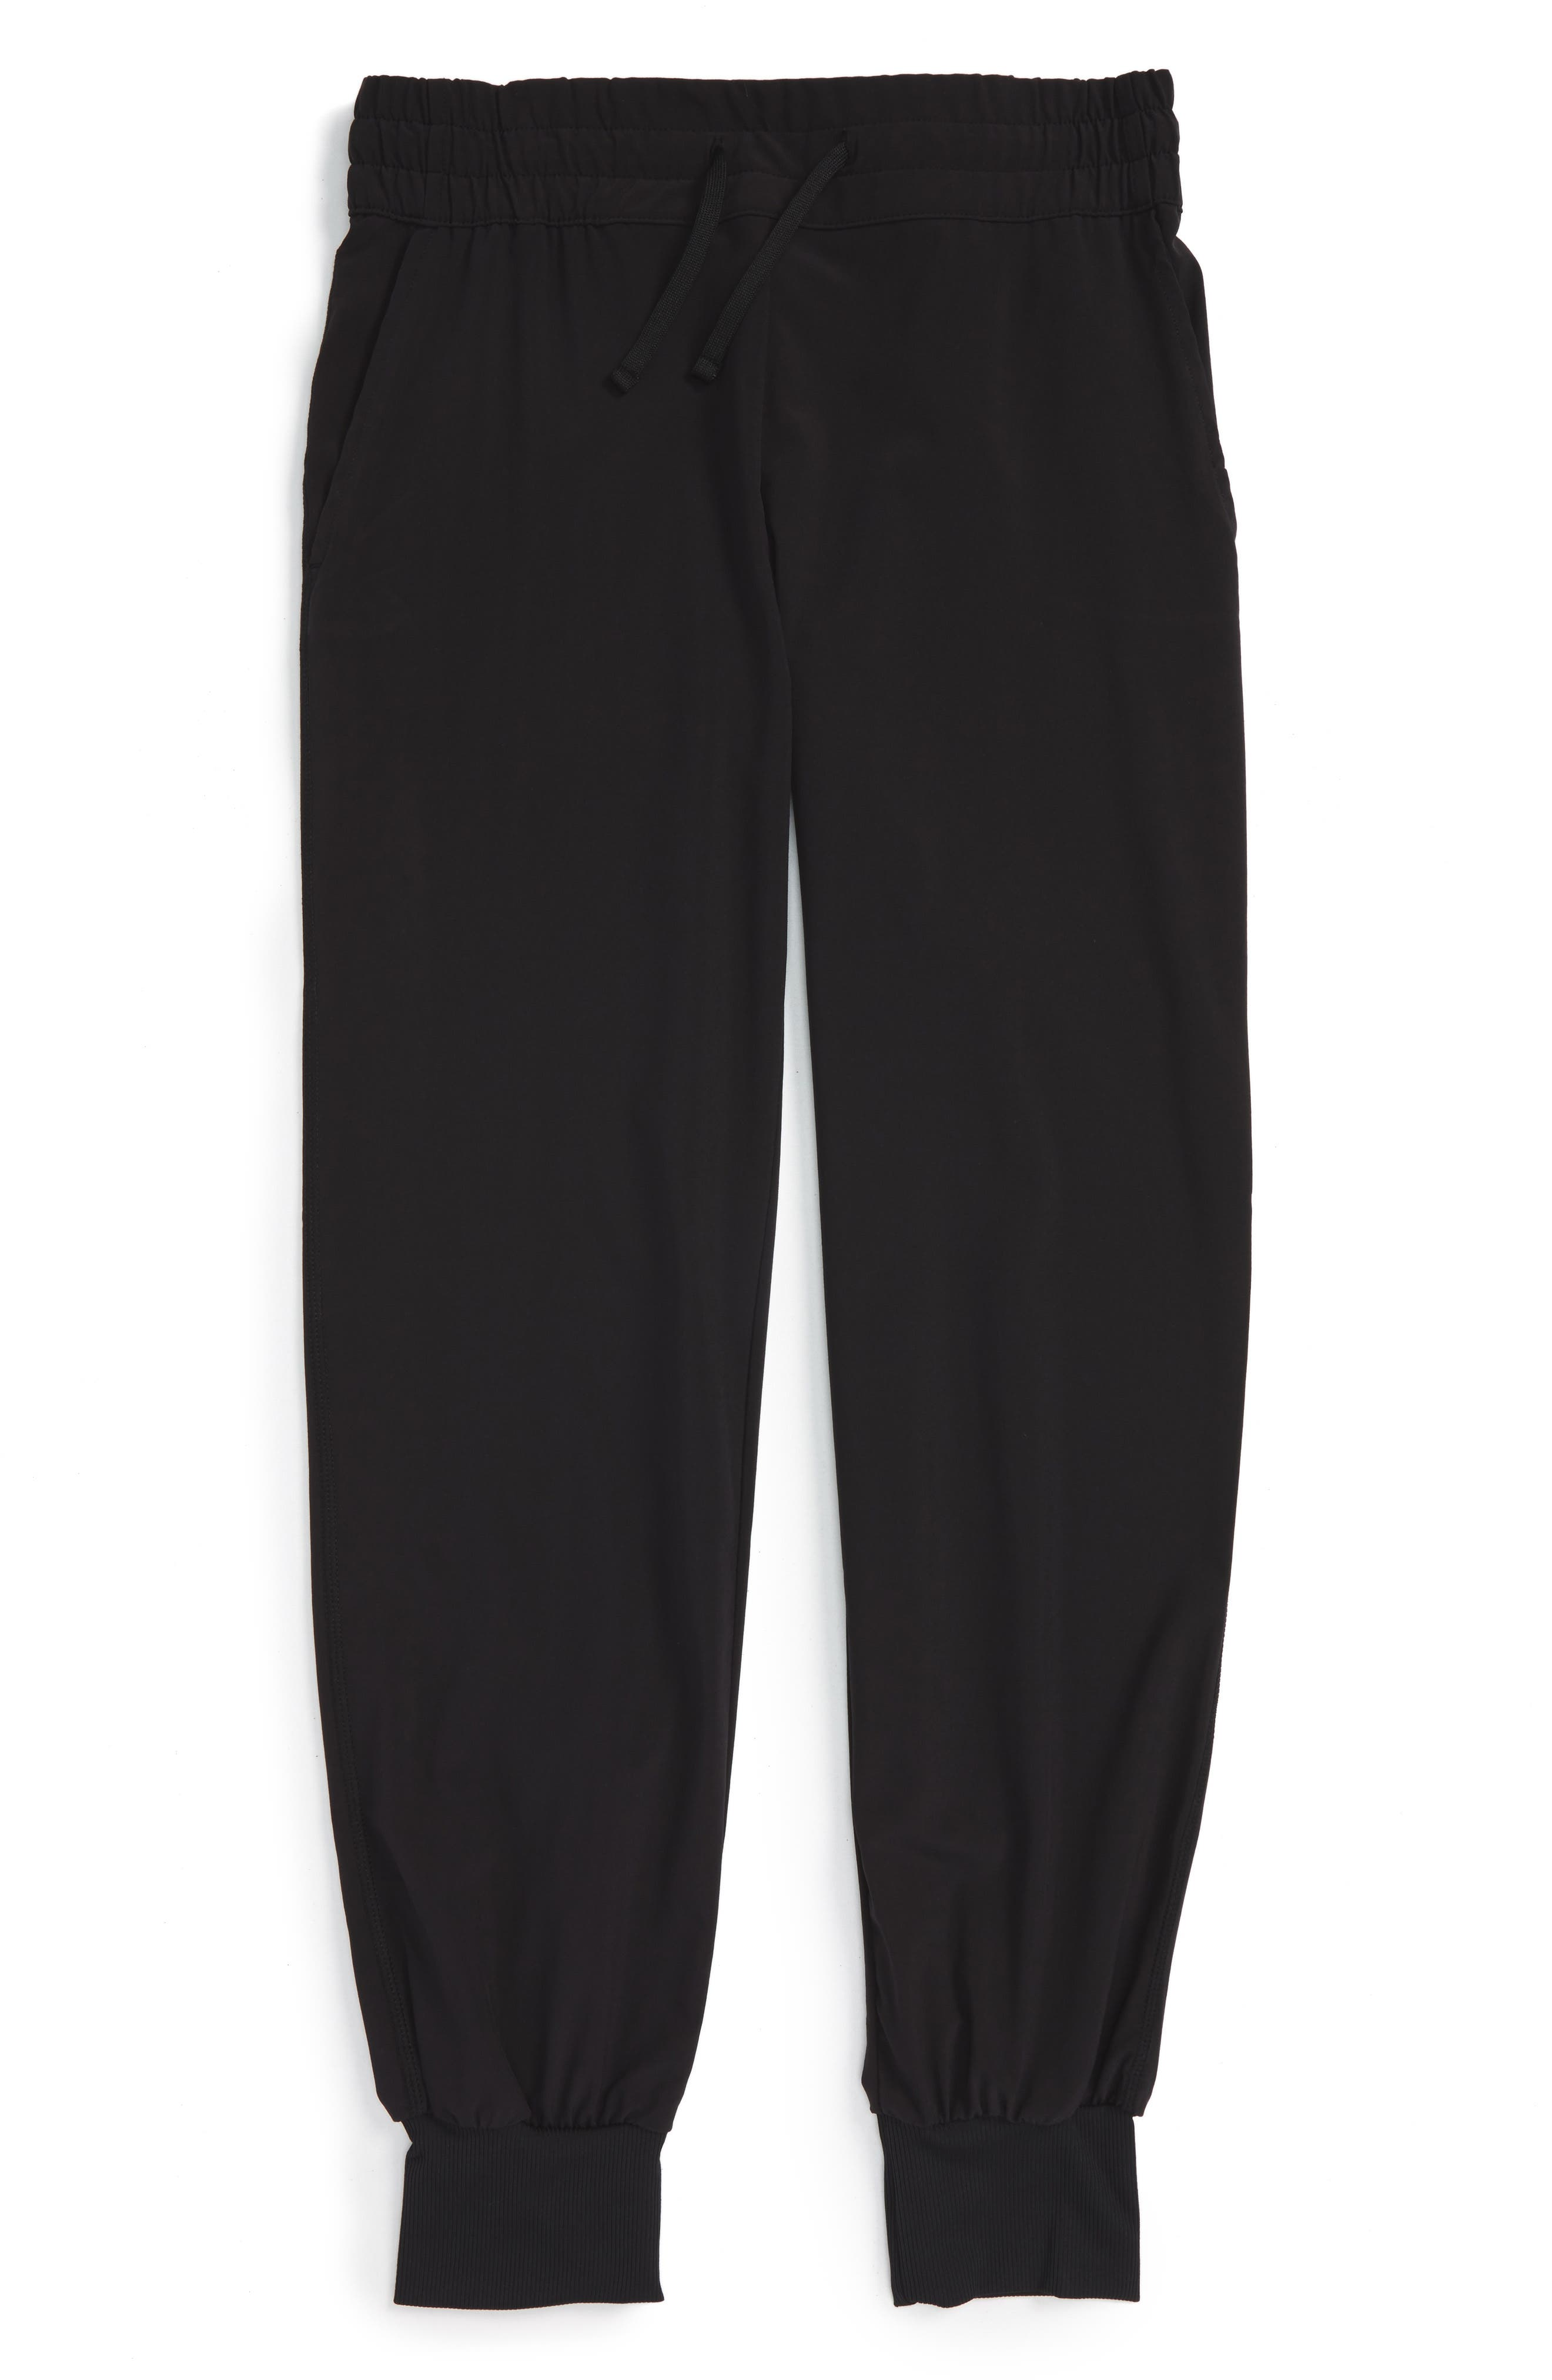 Dance Dance Pants,                             Alternate thumbnail 2, color,                             BLACK